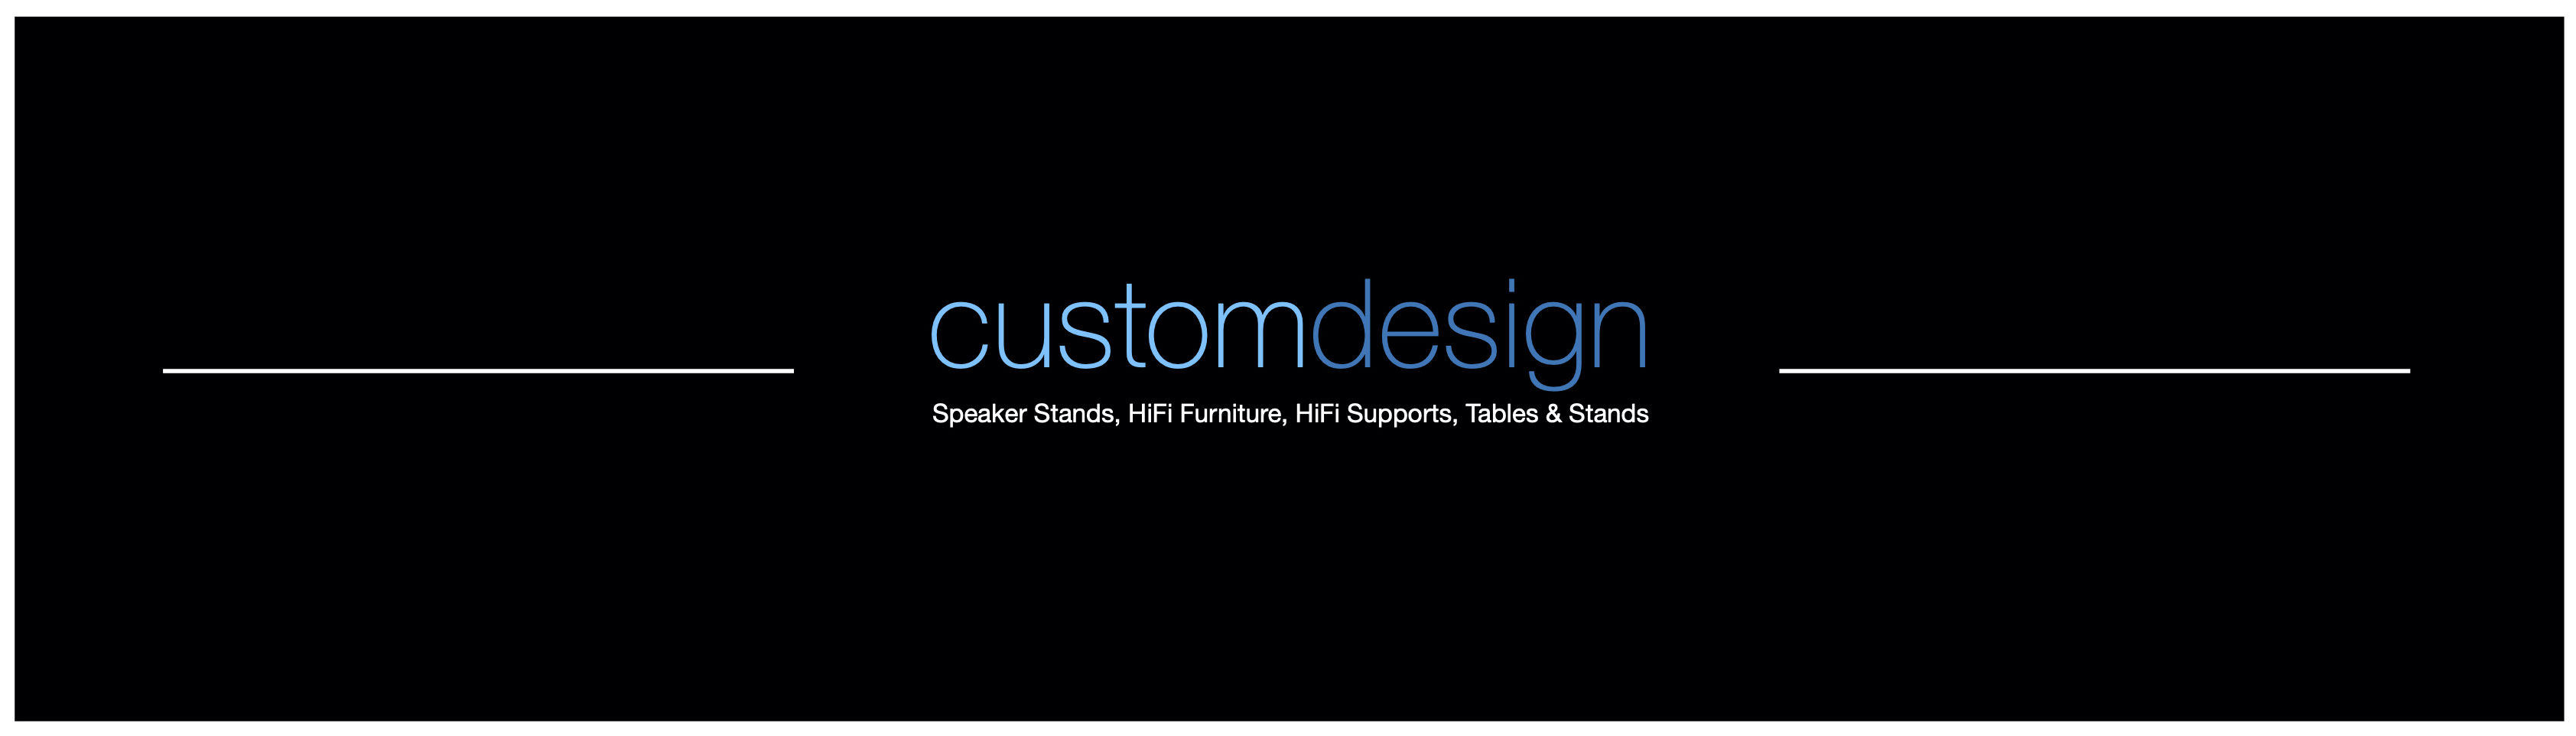 customdesign-logo.jpg